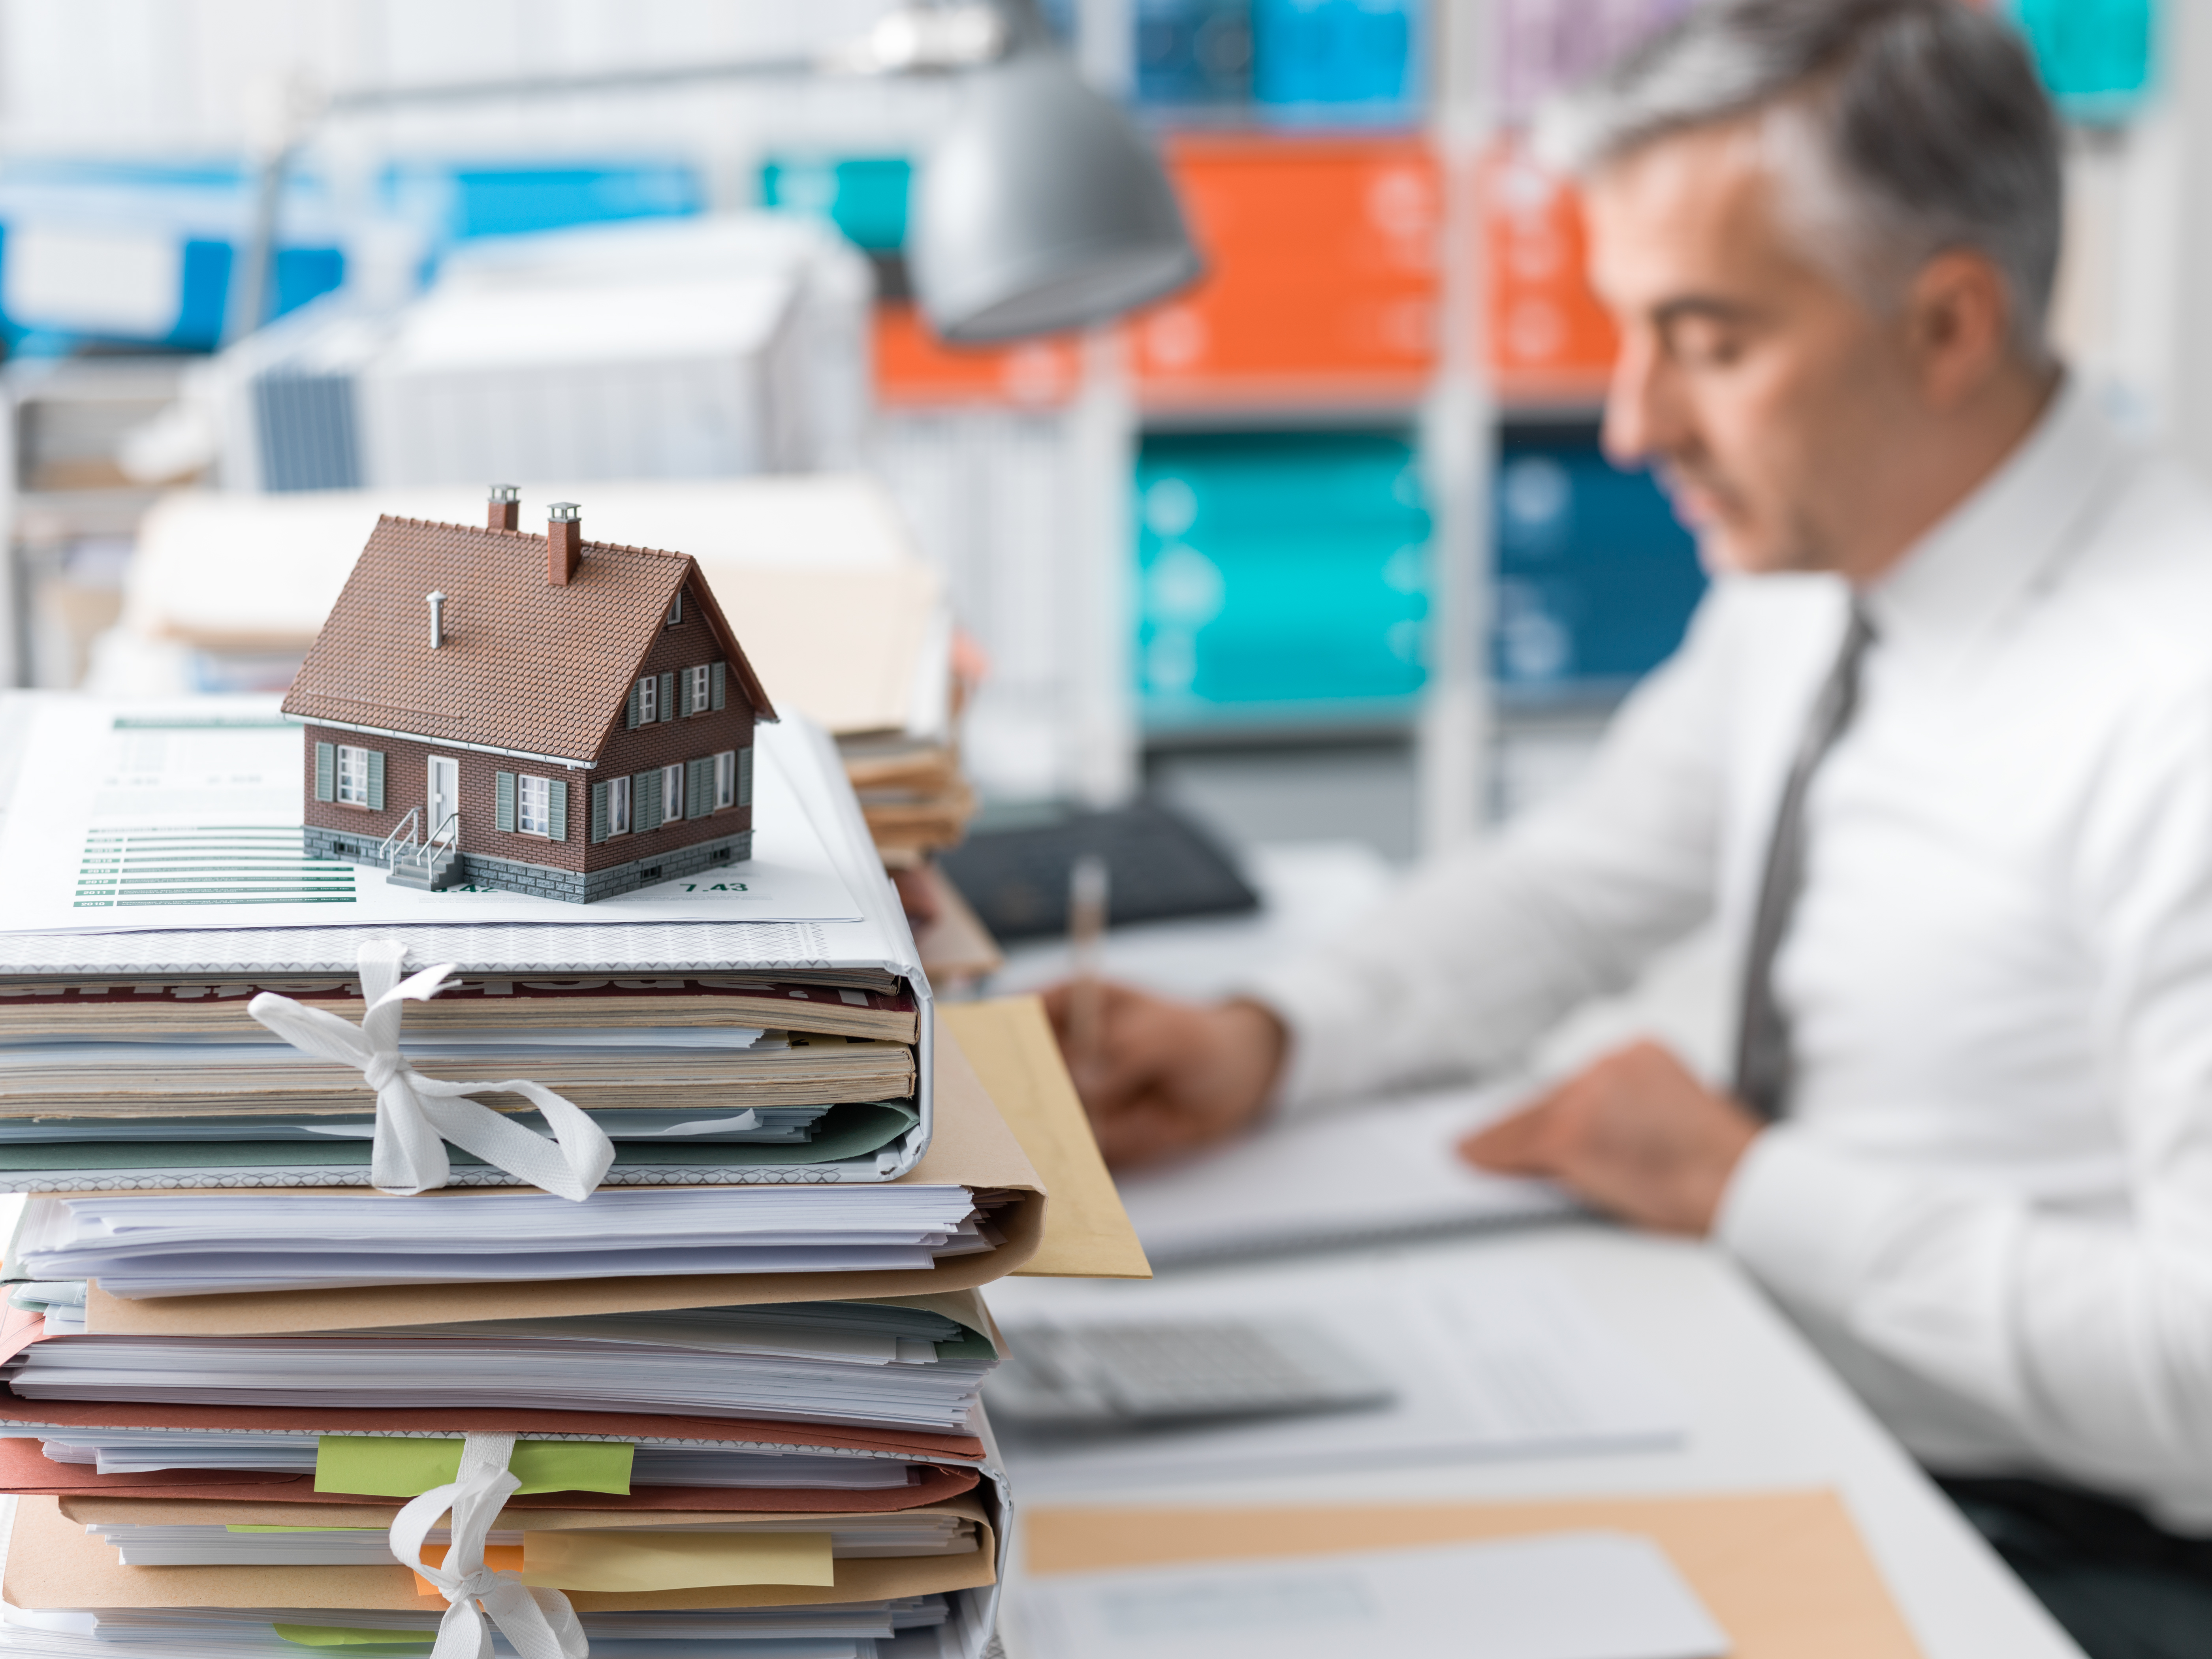 real-estate-mortgage-loans-and-paperwork-PXTTACG